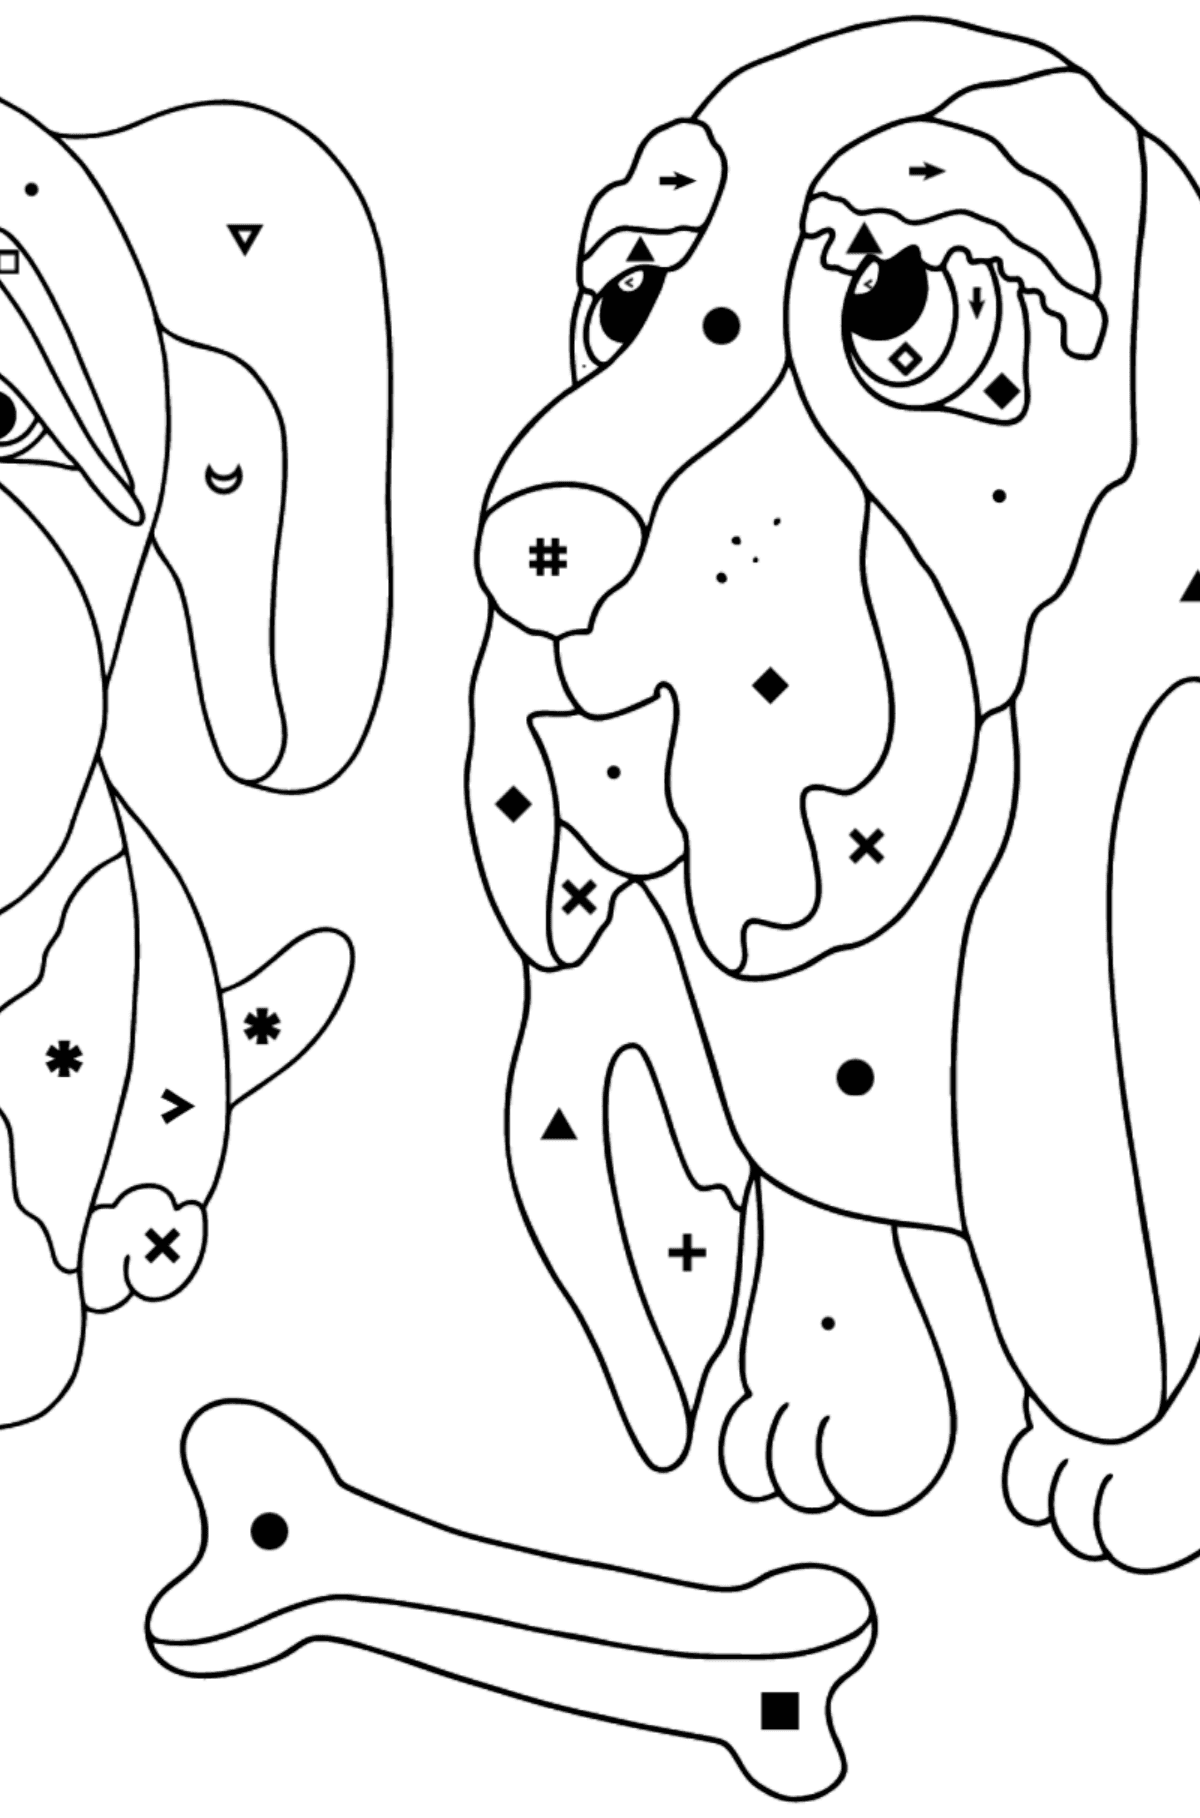 Coloring Page - Dogs are Looking at a Bone - Coloring by Symbols for Kids